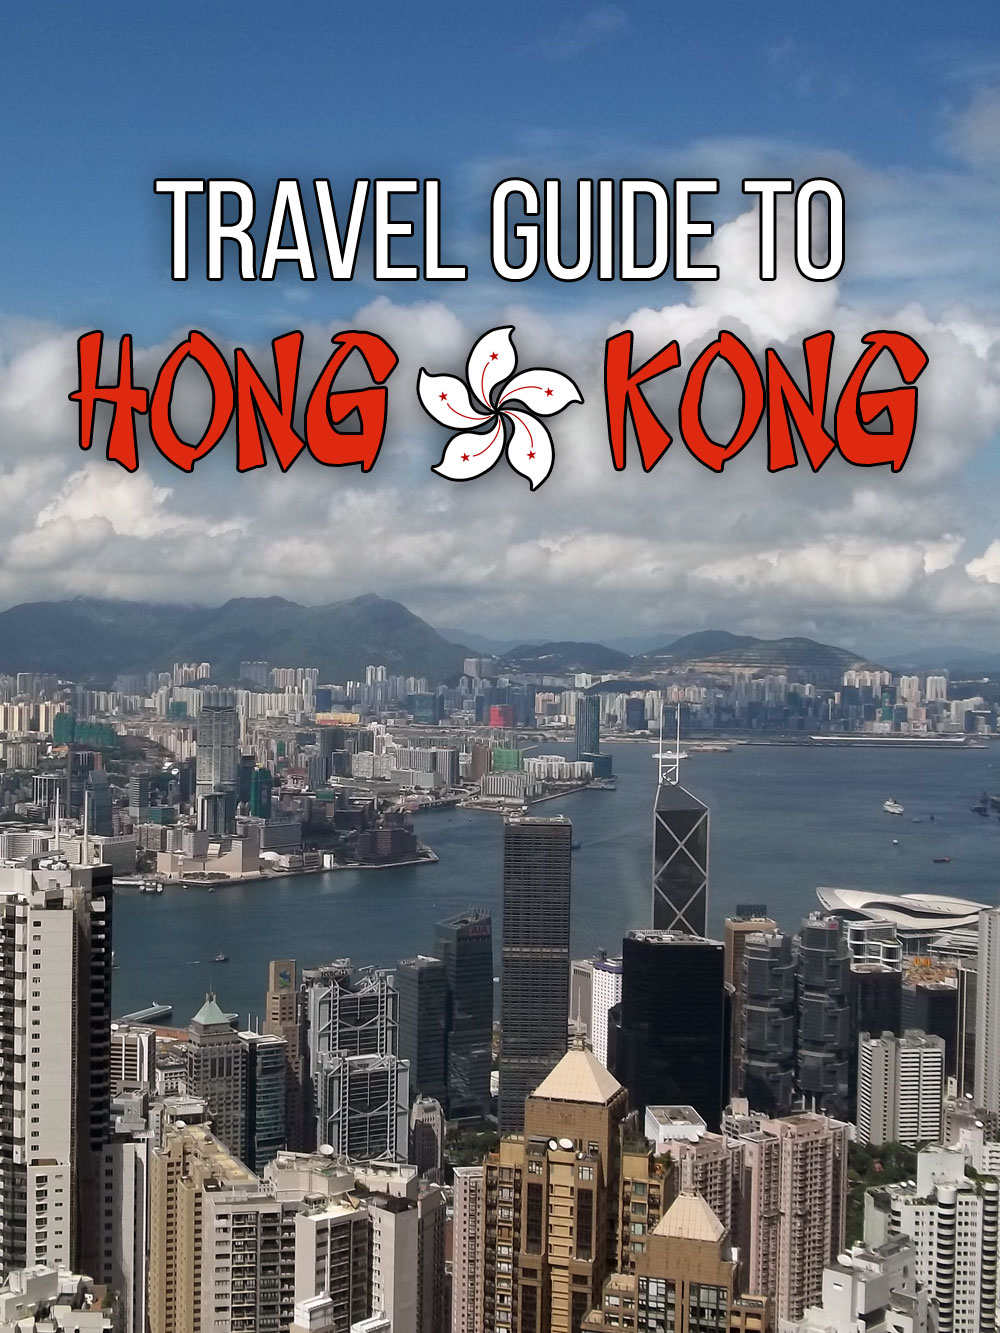 Travel Guide to Hong Kong